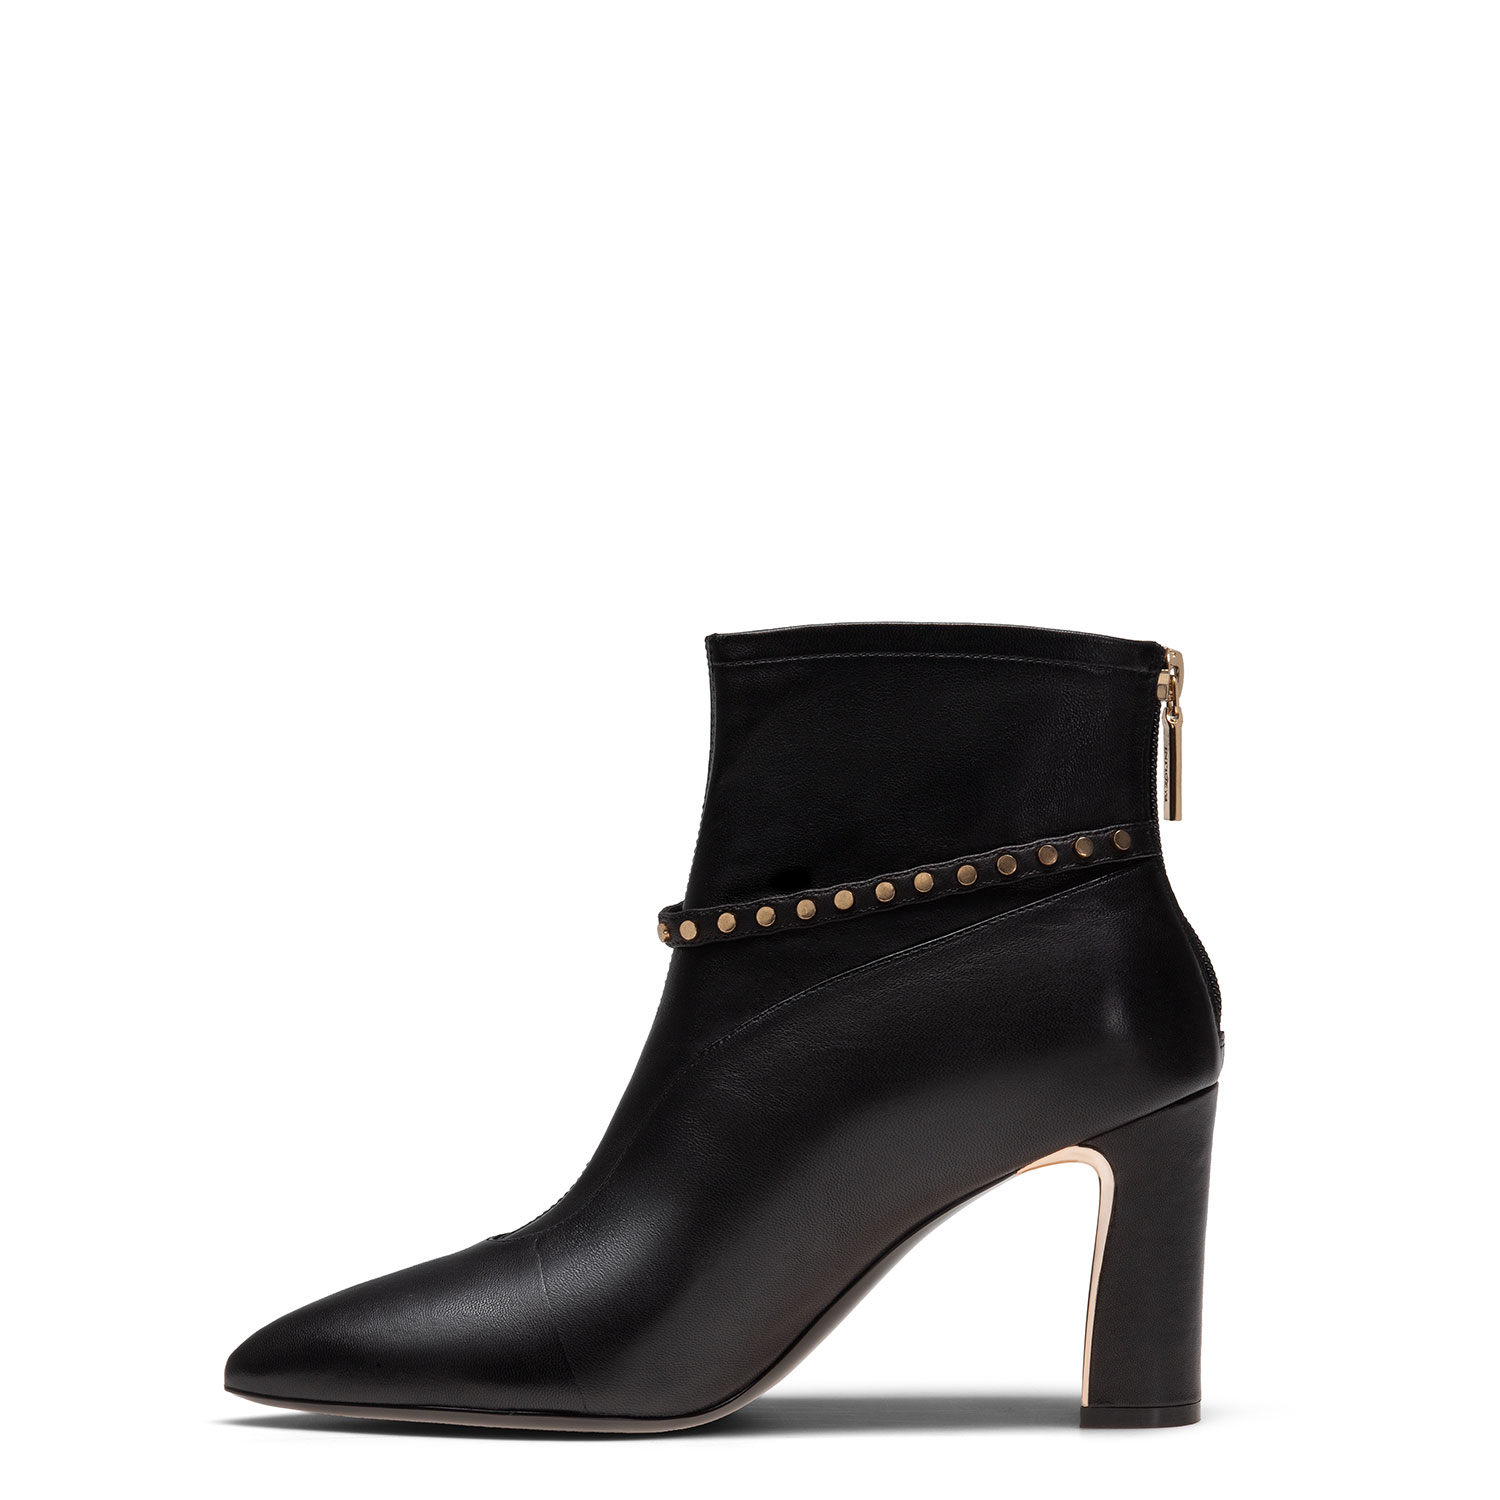 Women's ankle boots PAZOLINI FL-ARY1-1